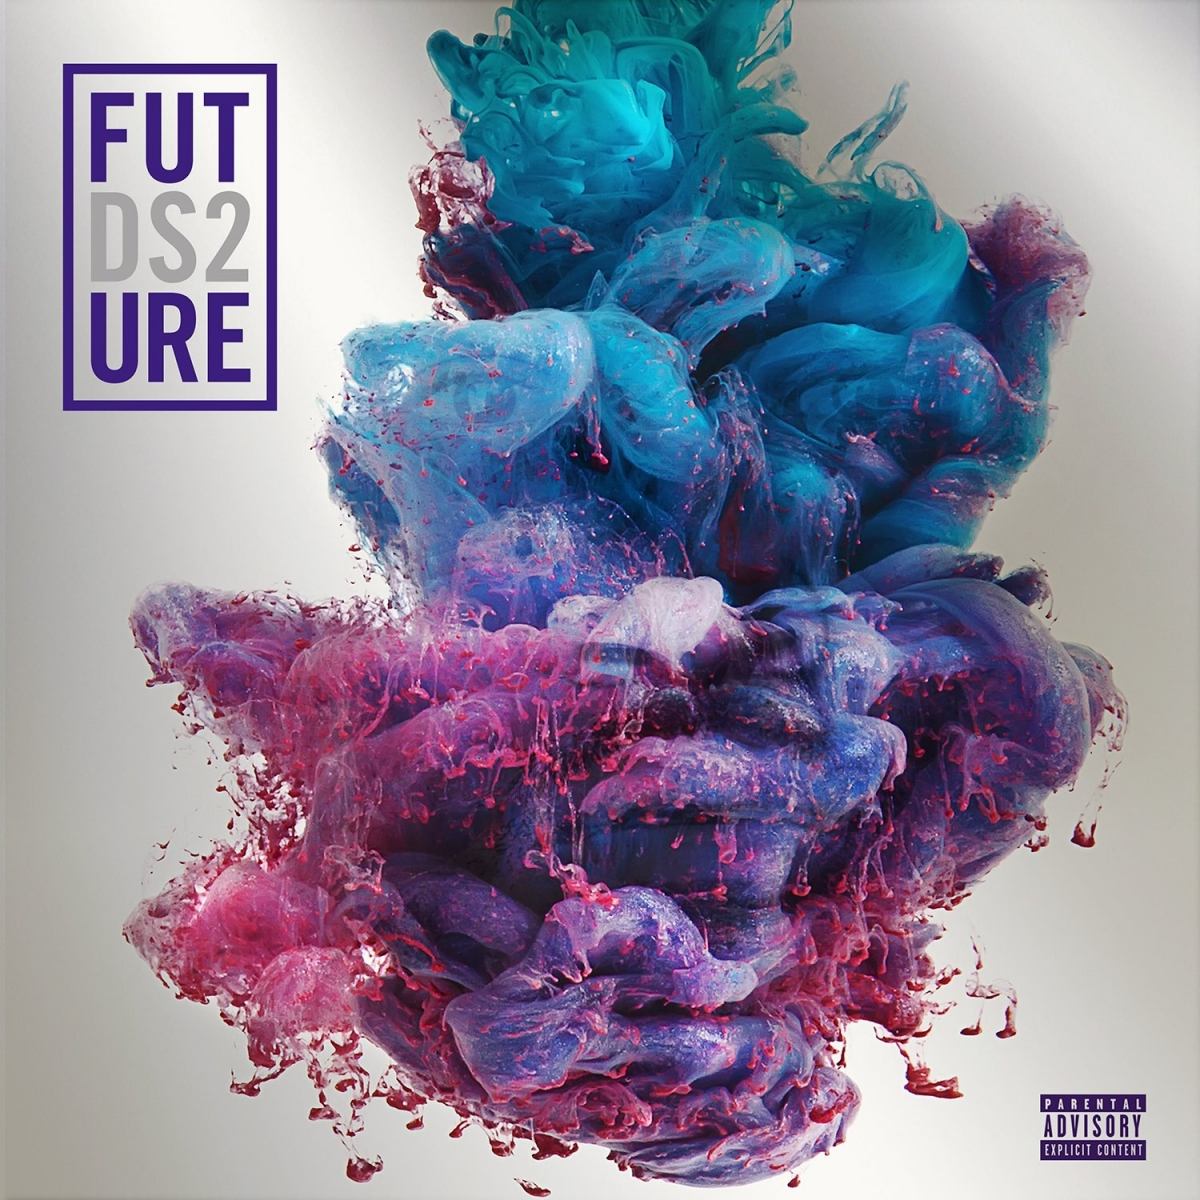 Future DS2 album